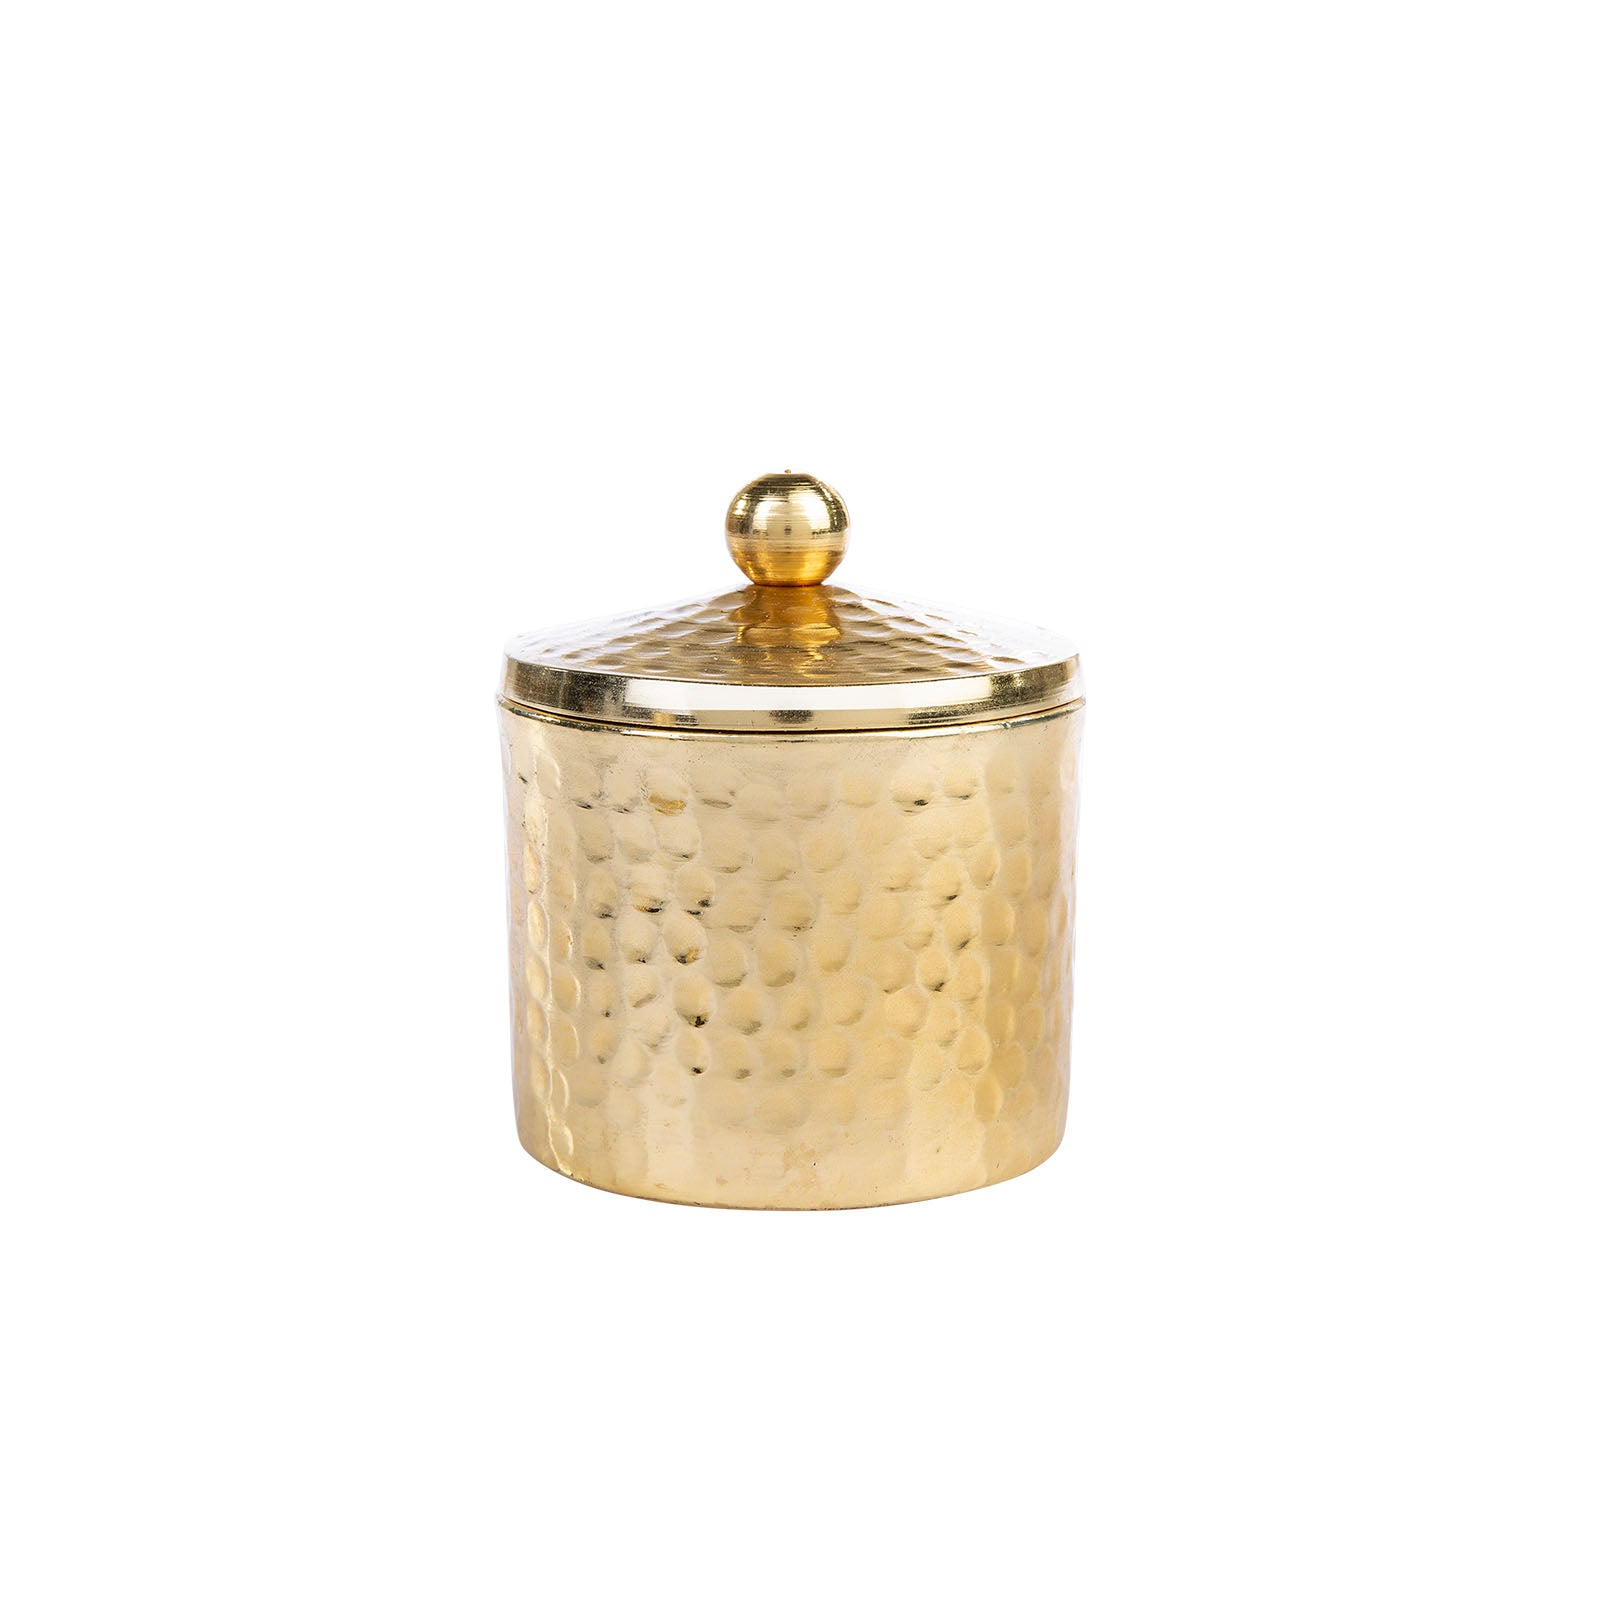 Karaca set of 2 Morocco Small Scented Candle  in Gold Metal Box 153.20.01.0177 -  كاراجا شمعة مغربية صغيرة معطرة في علبة معدنية ذهبية - Shop Online Furniture and Home Decor Store in Dubai, UAE at ebarza